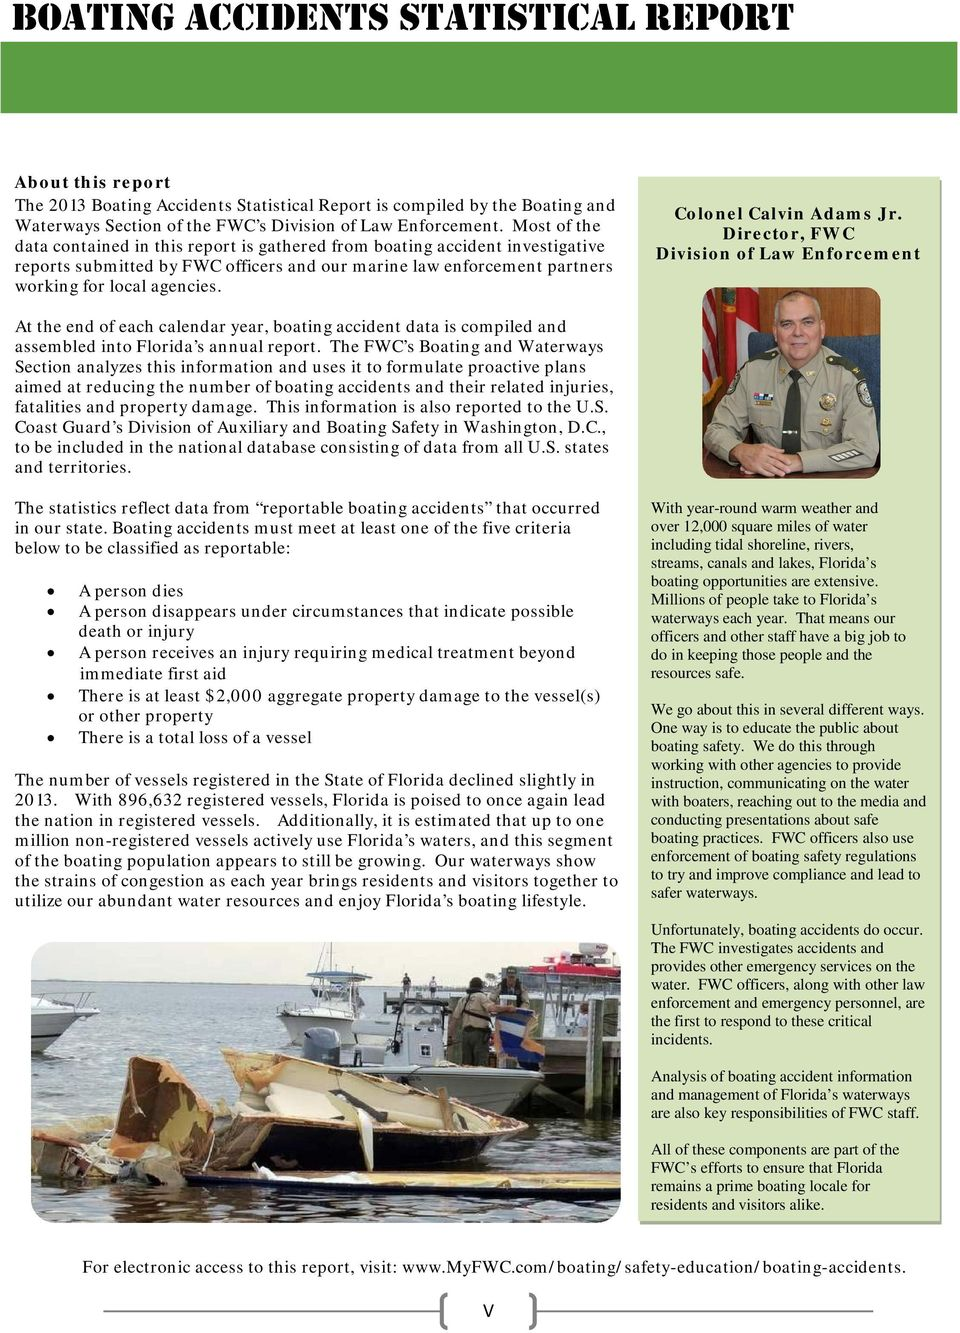 Colonel Calvin Adams Jr. Director, FWC Division of Law Enforcement At the end of each calendar year, boating accident data is compiled and assembled into Florida s annual report.